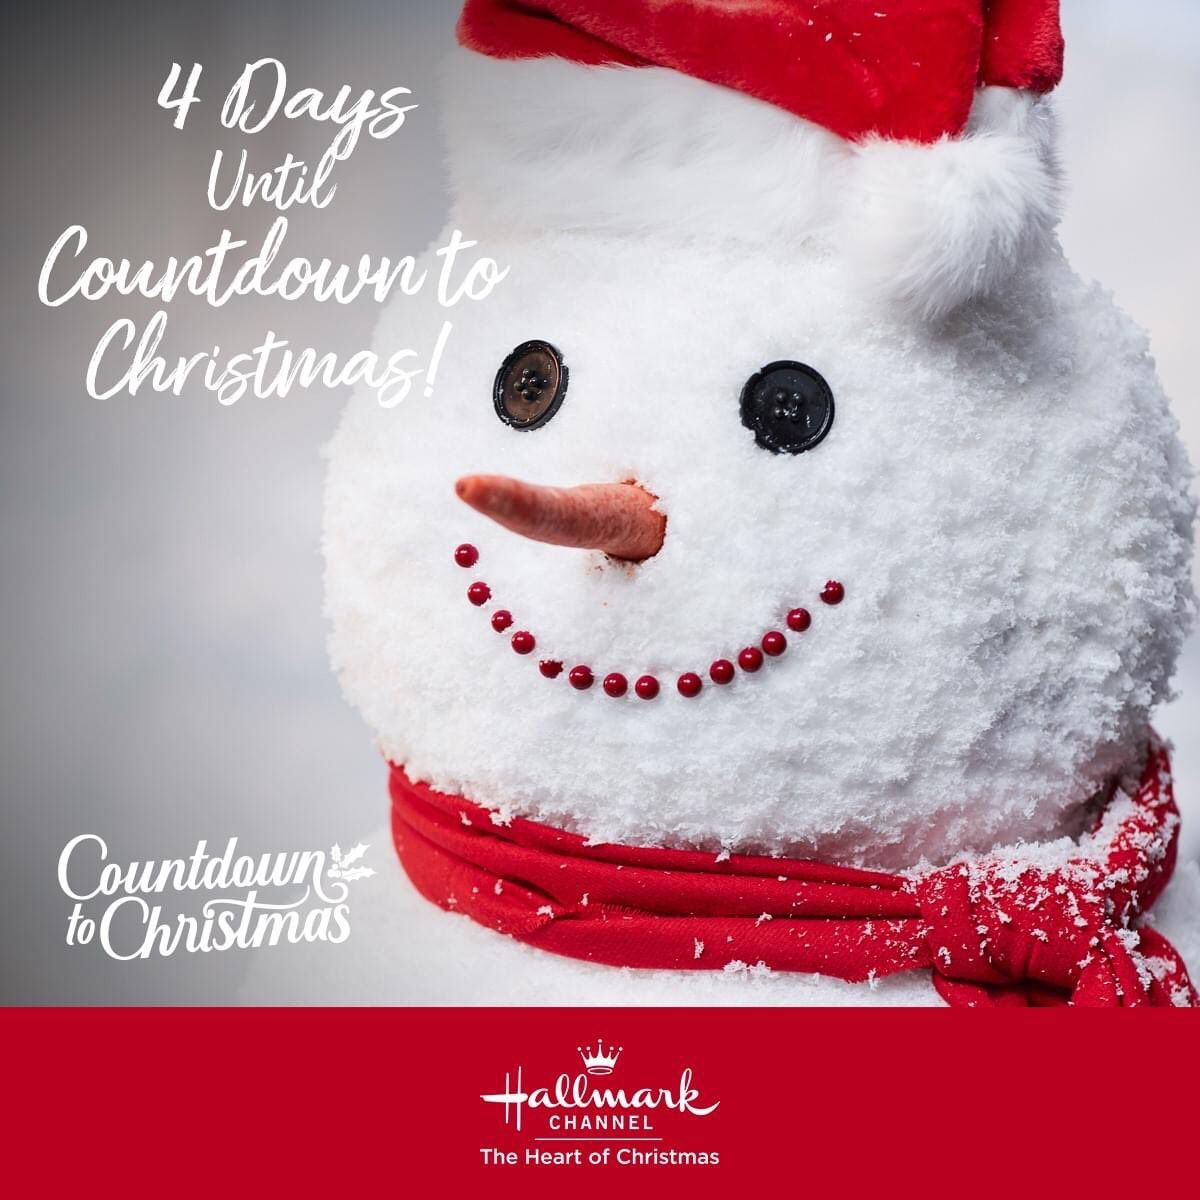 So excited!!!!  Who else can't wait?  💚🎄❤️#countdown #christmas #winter #christmascountdown #christmasspirit #christmas2020 #holidays #christmasmagic #santa #santaclaus #believe #ChristmasMovies #MovieReviews https://t.co/UOTAyx2fER